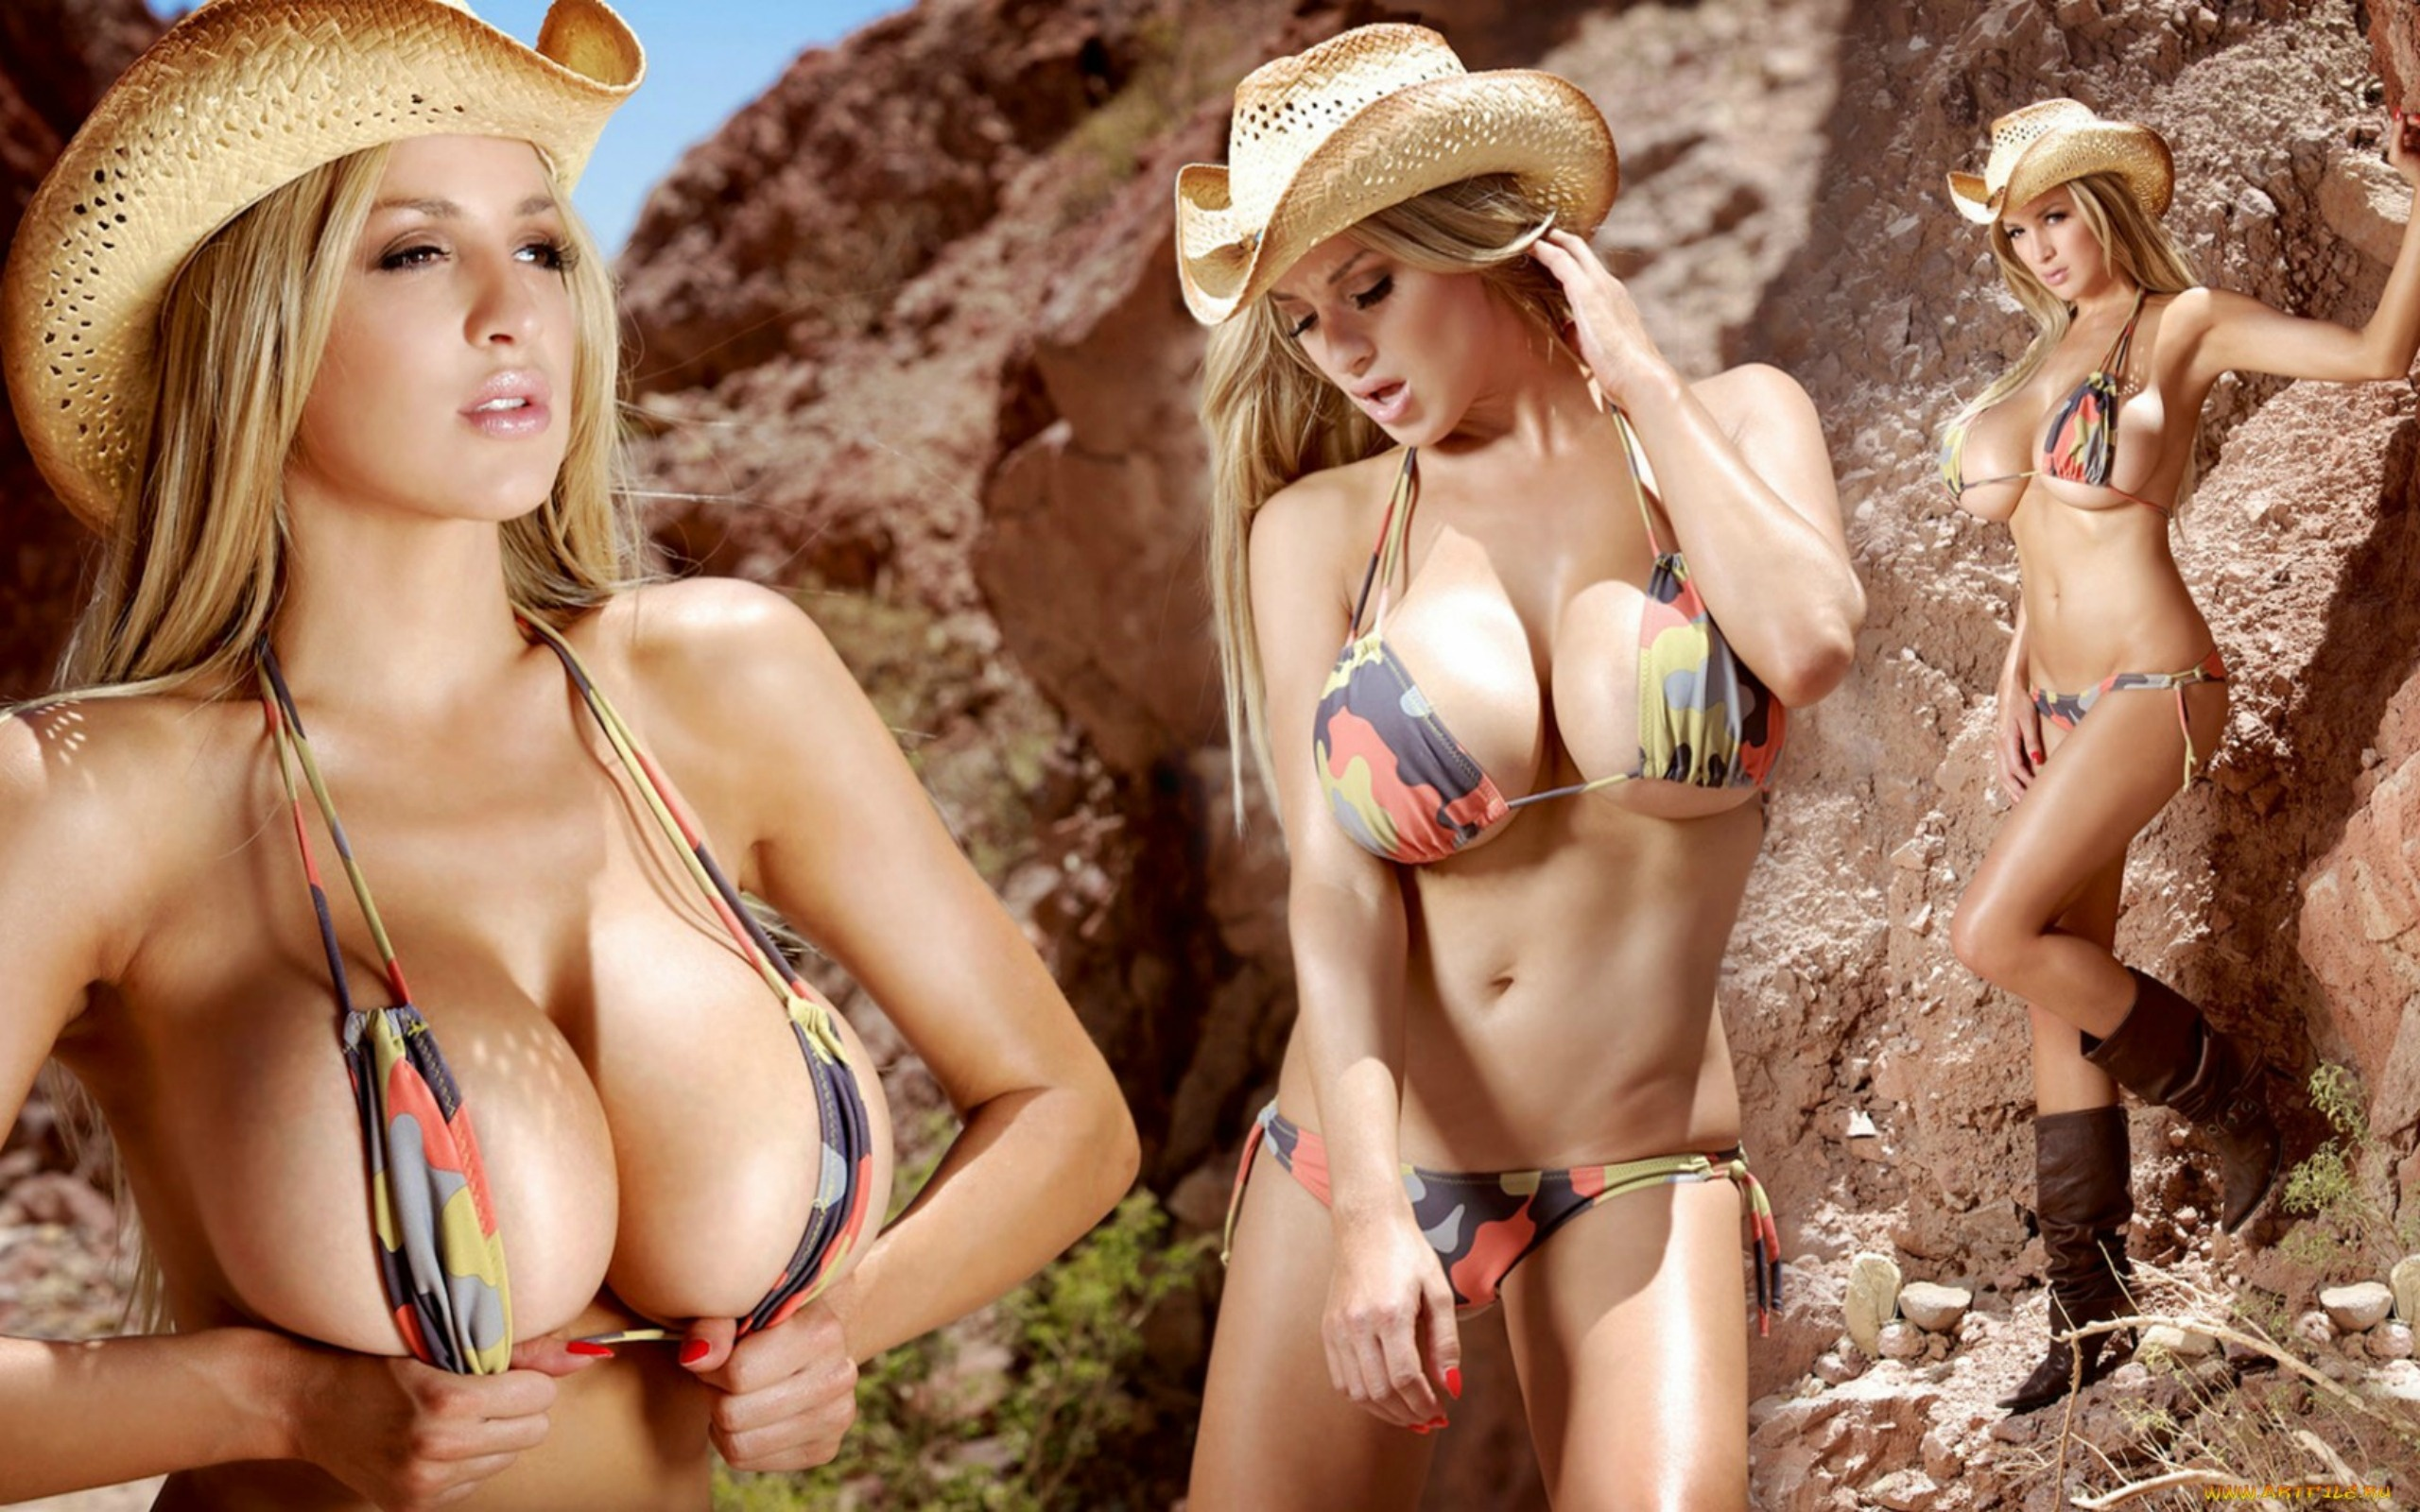 Fabulous blonde babe in glasses shows her big tits outdoor № 32274 загрузить